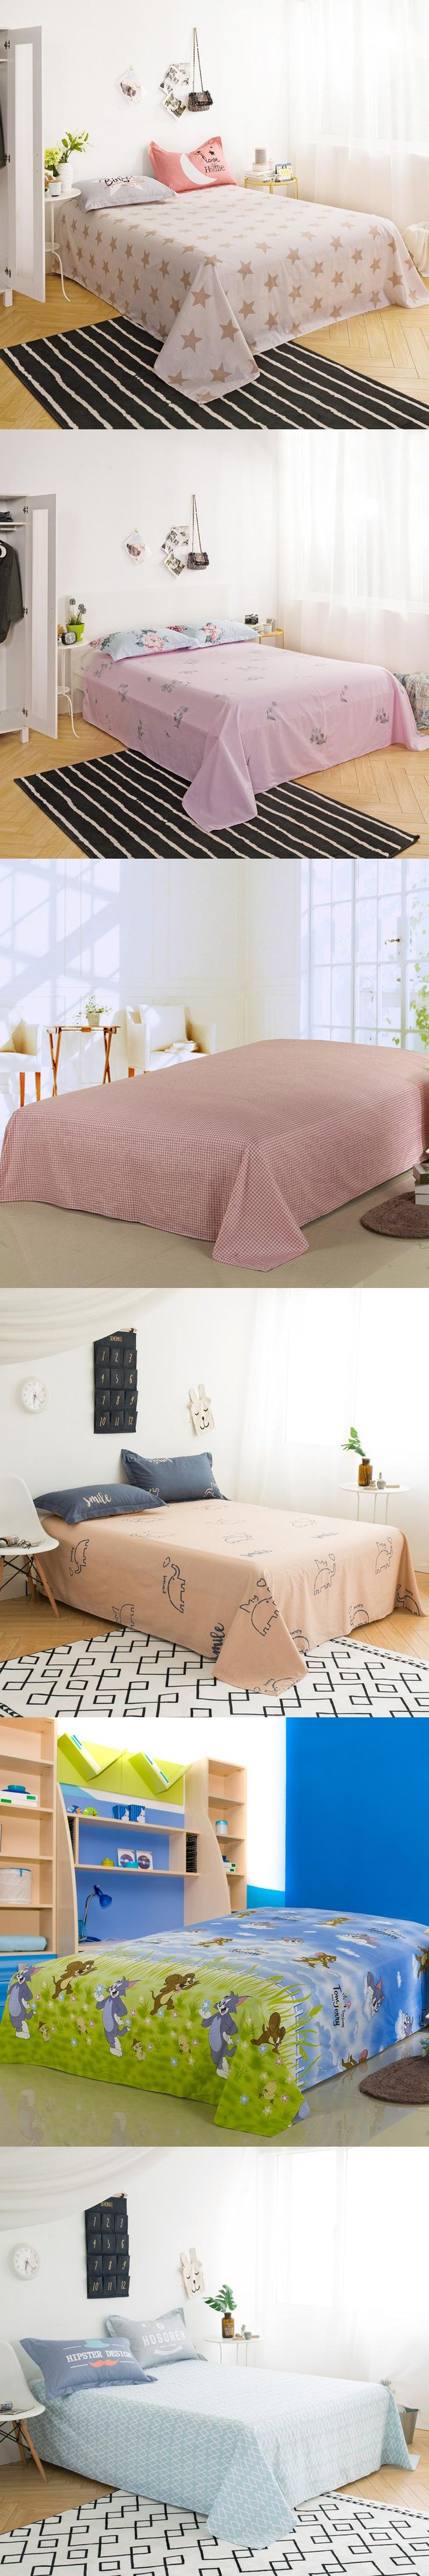 Hot Sale 1pcs Beauty Flowers Flat Sheet 100% Cotton Material Bed Sheet for  Home Bedding